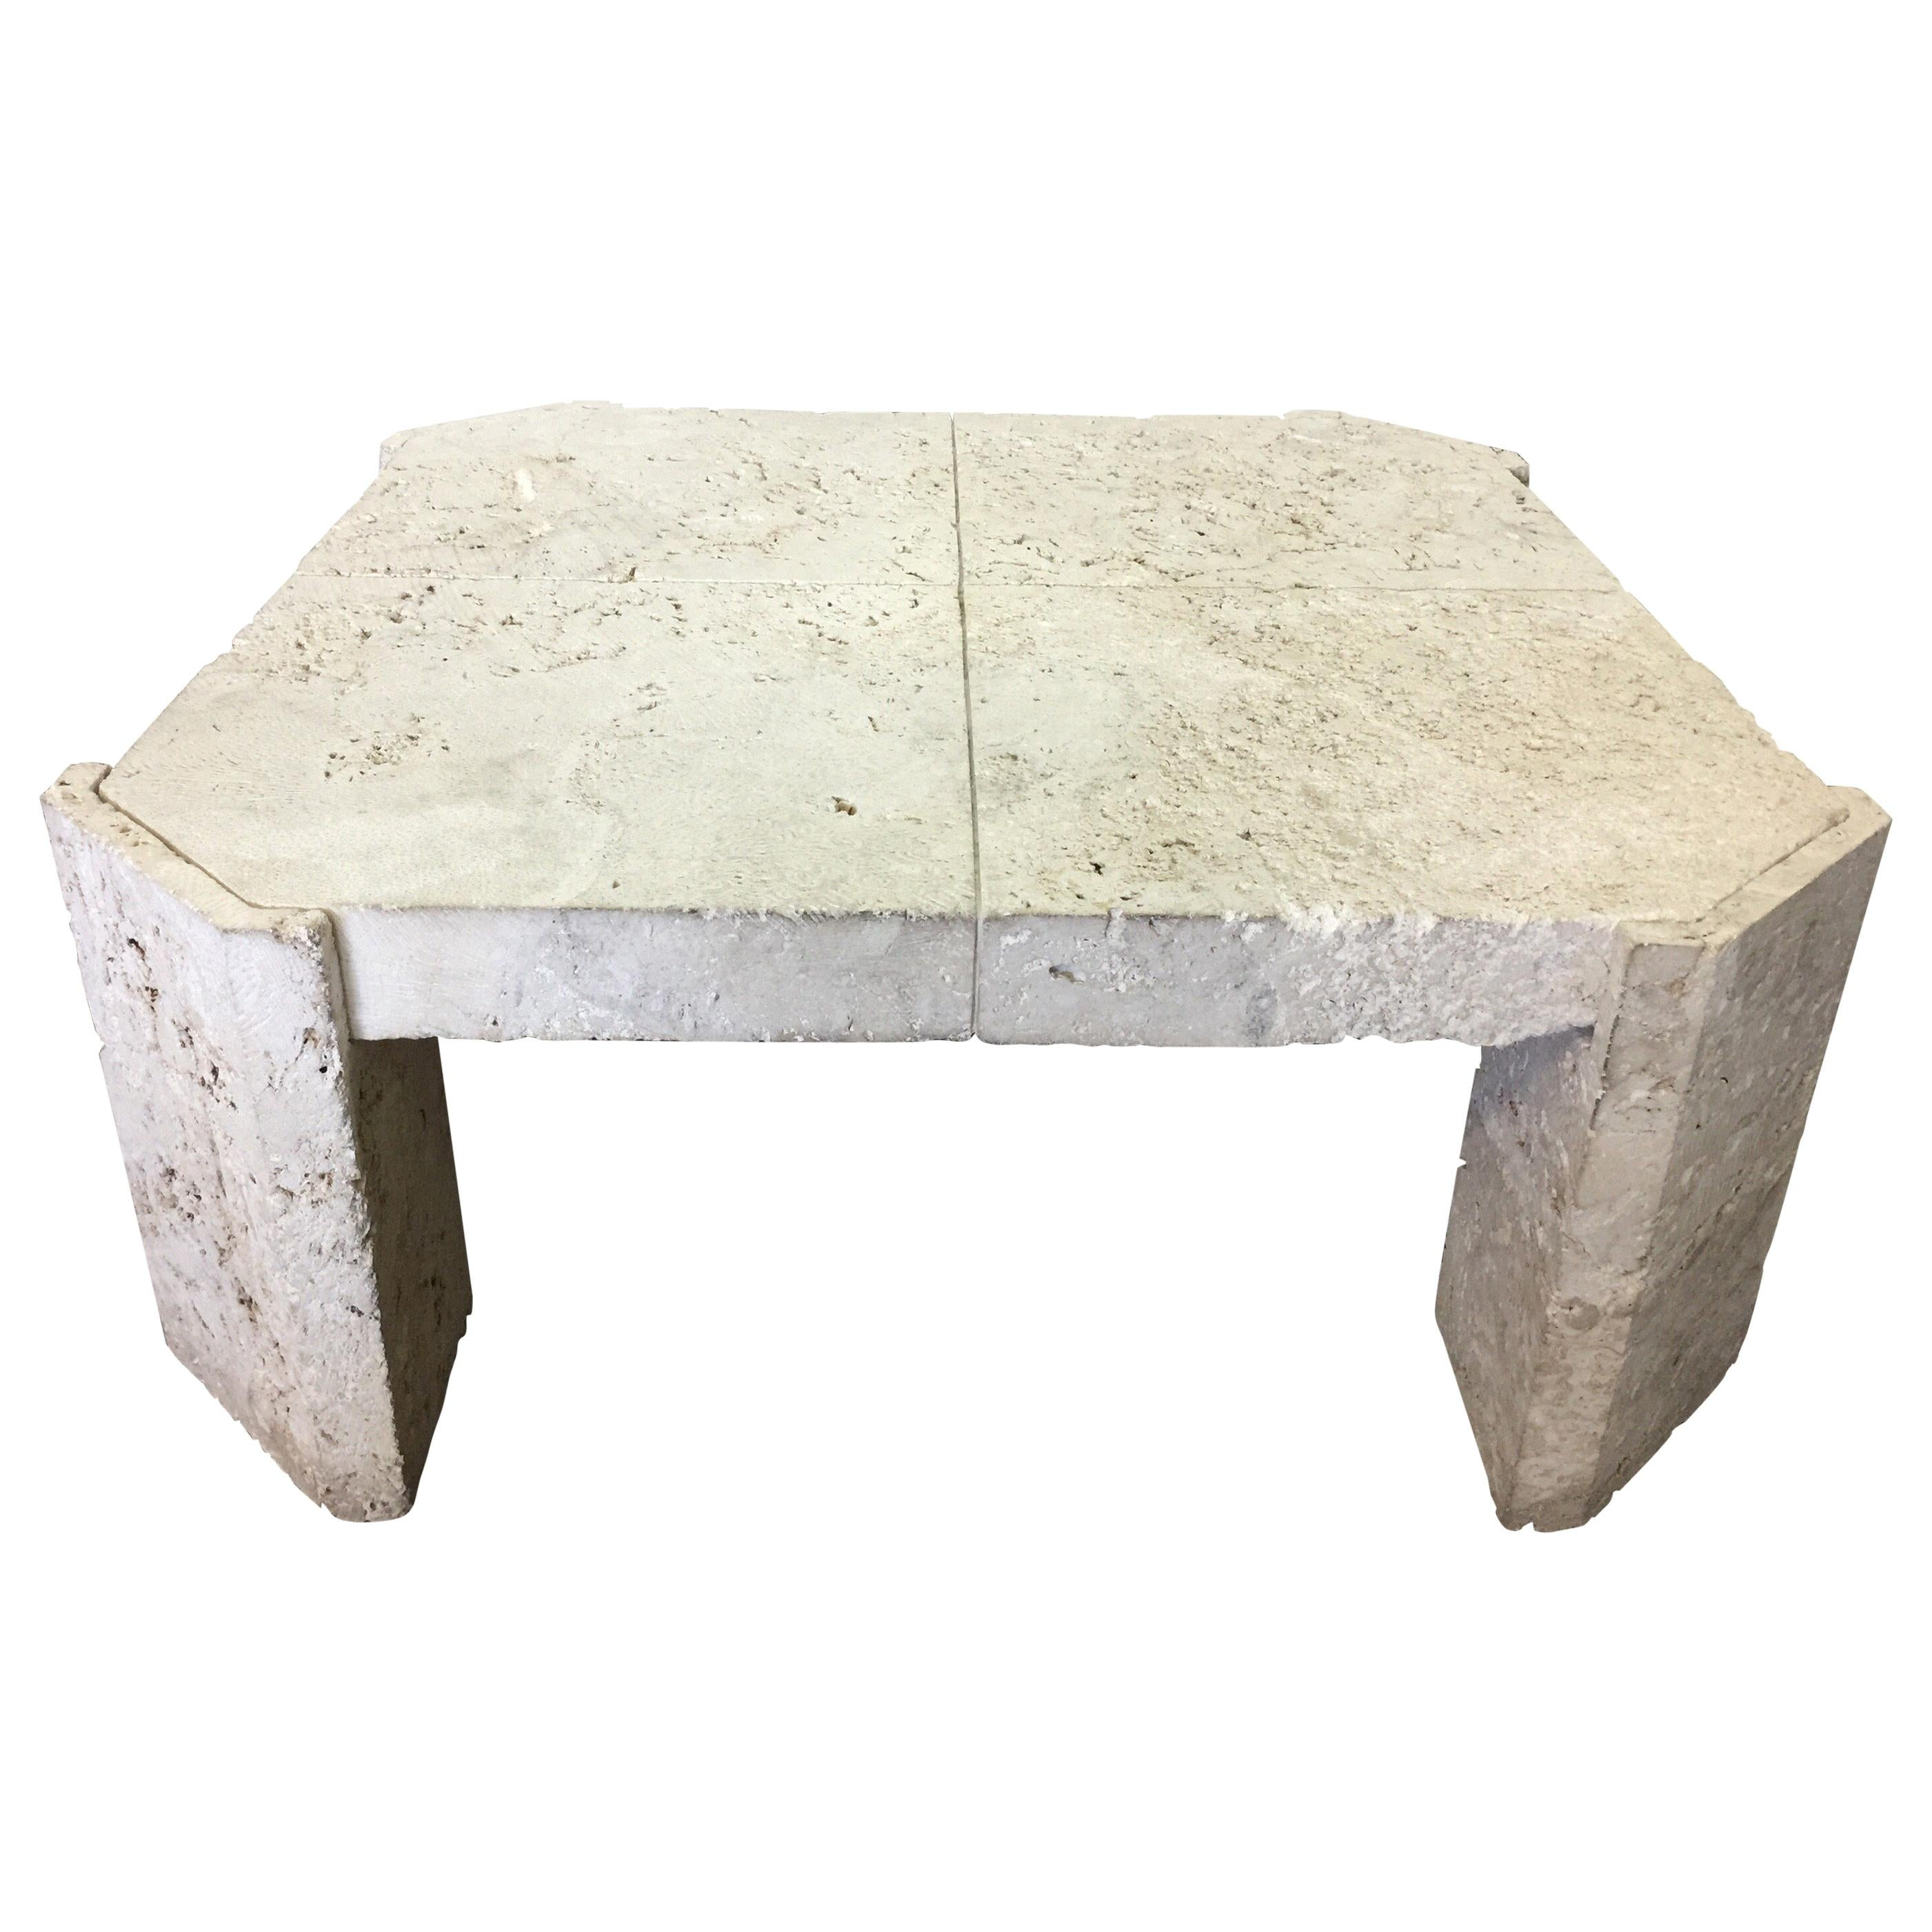 Superb Samuel Marx Style Natural Coquina Coral Stone Coffee Table